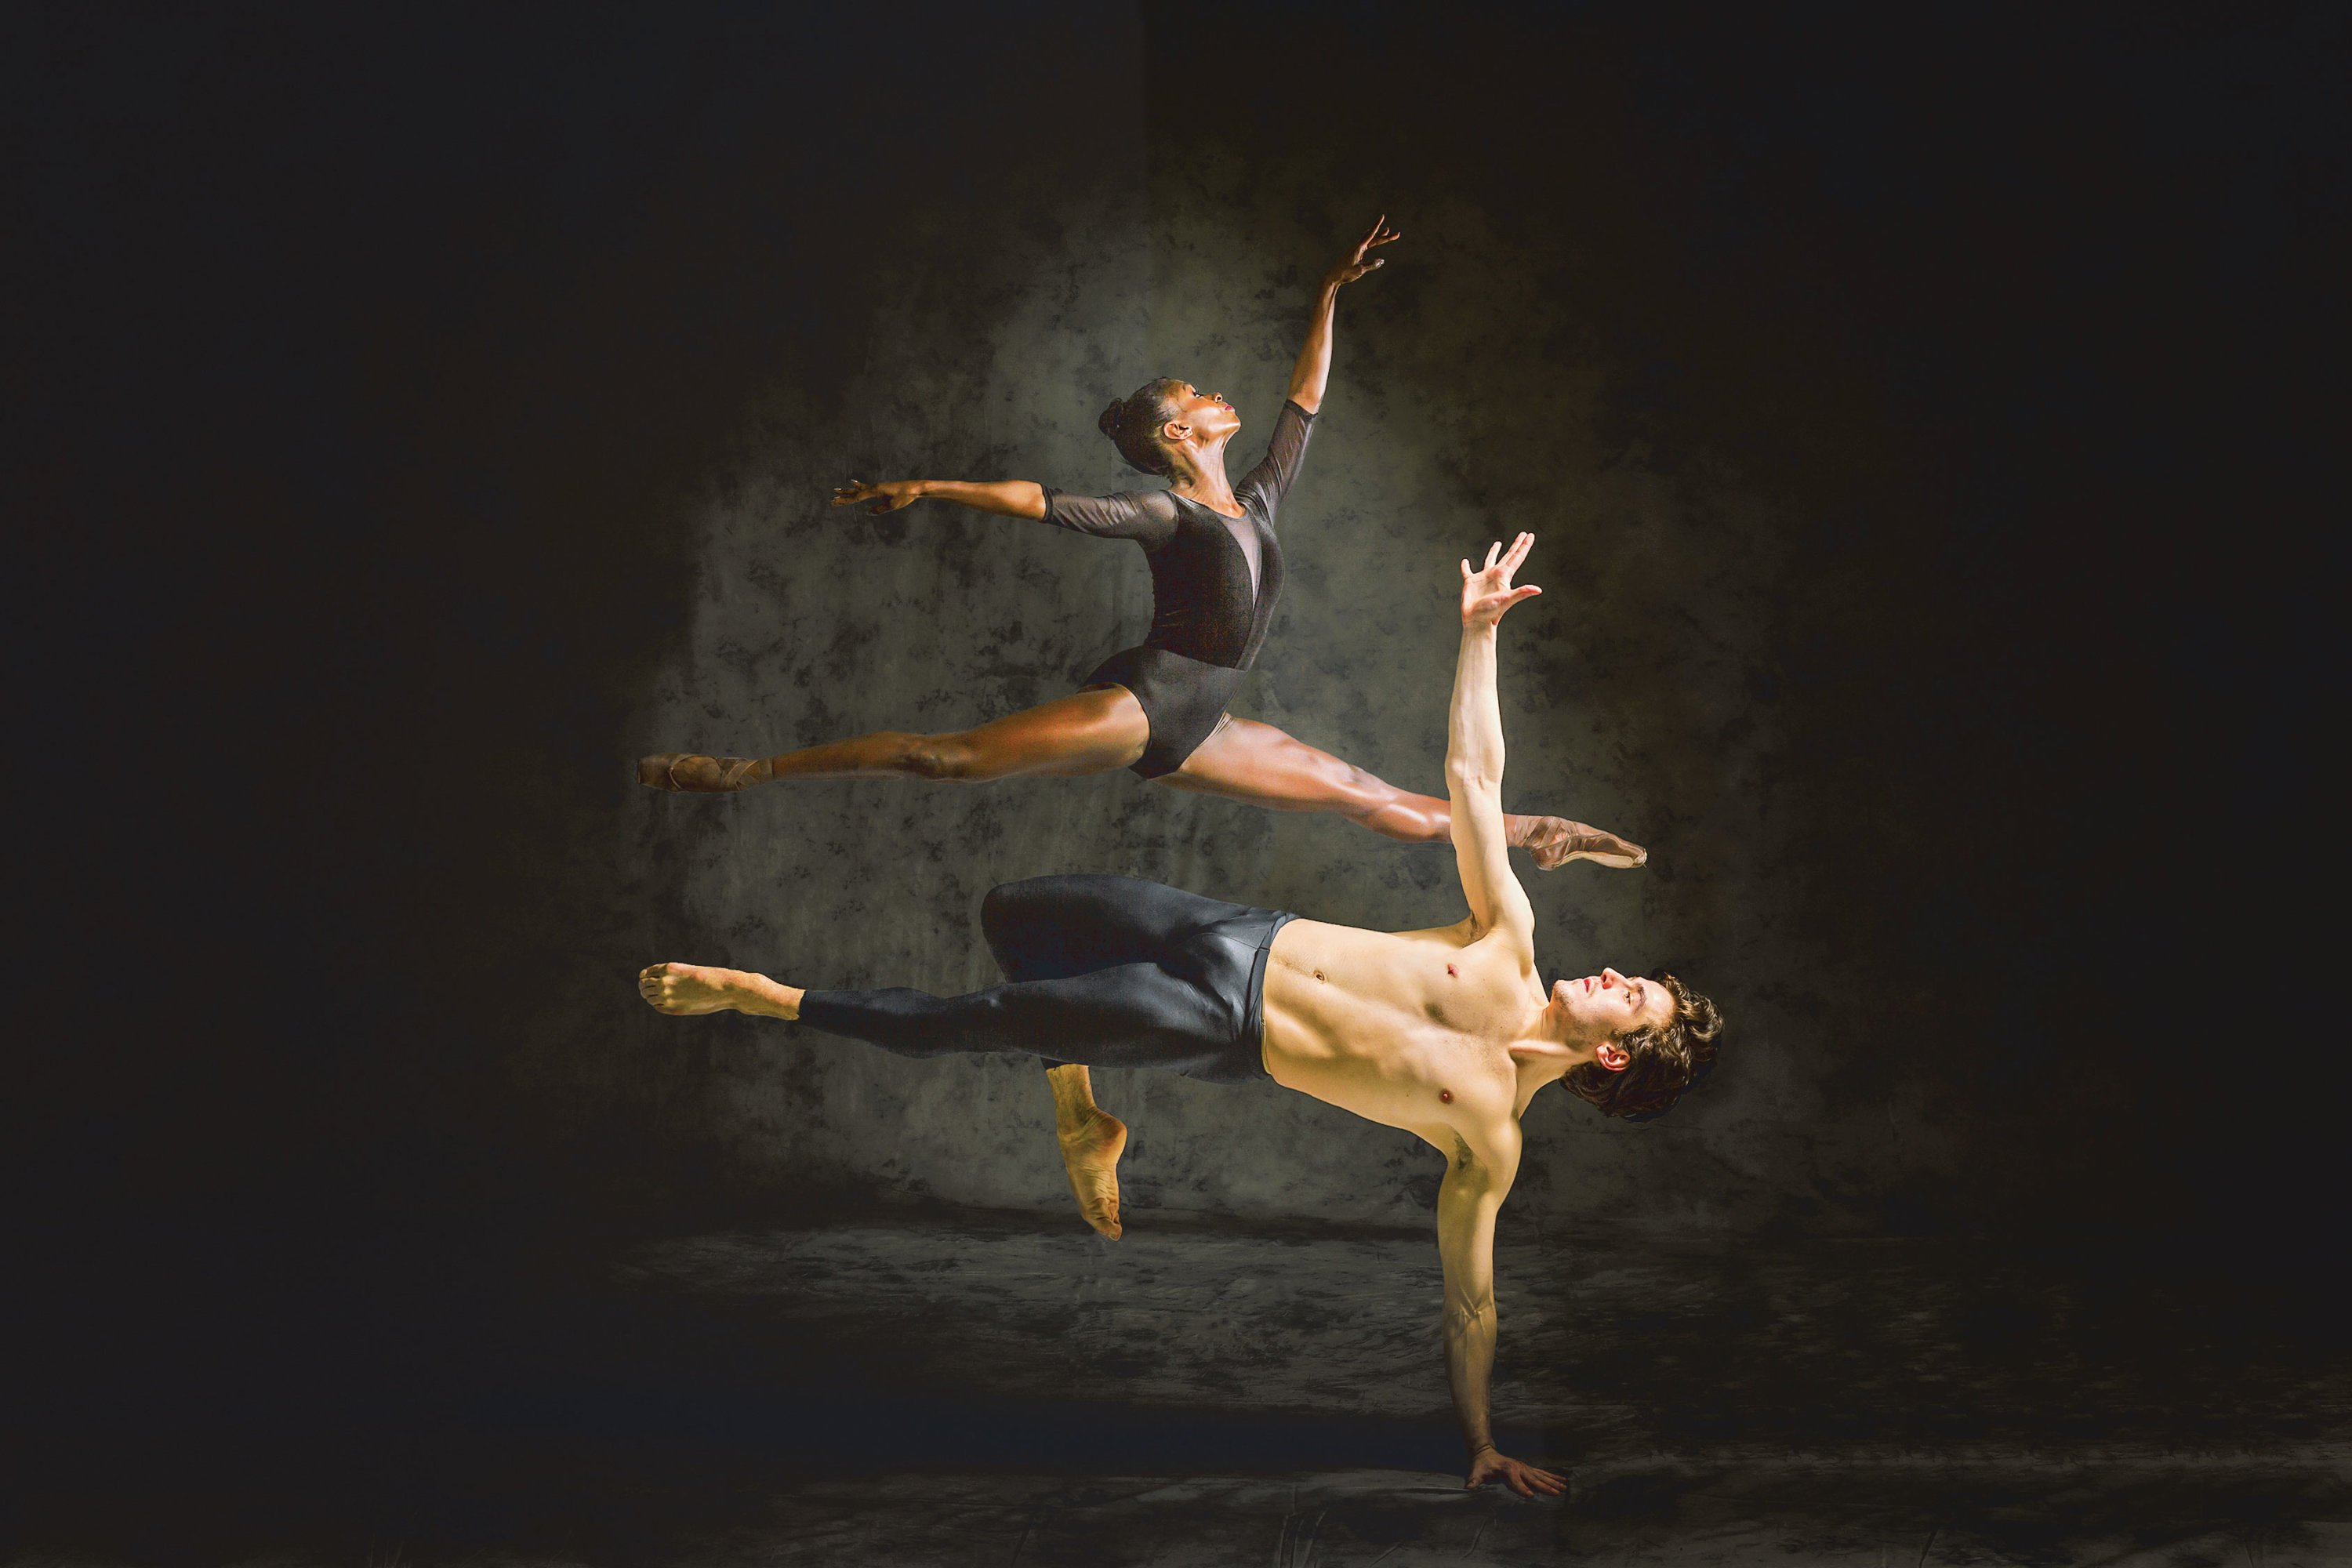 Photograph of NEXTsteps Dancers Alexandros Pappajohn and Ashley Murphy-Wilson by Procopio Photography.